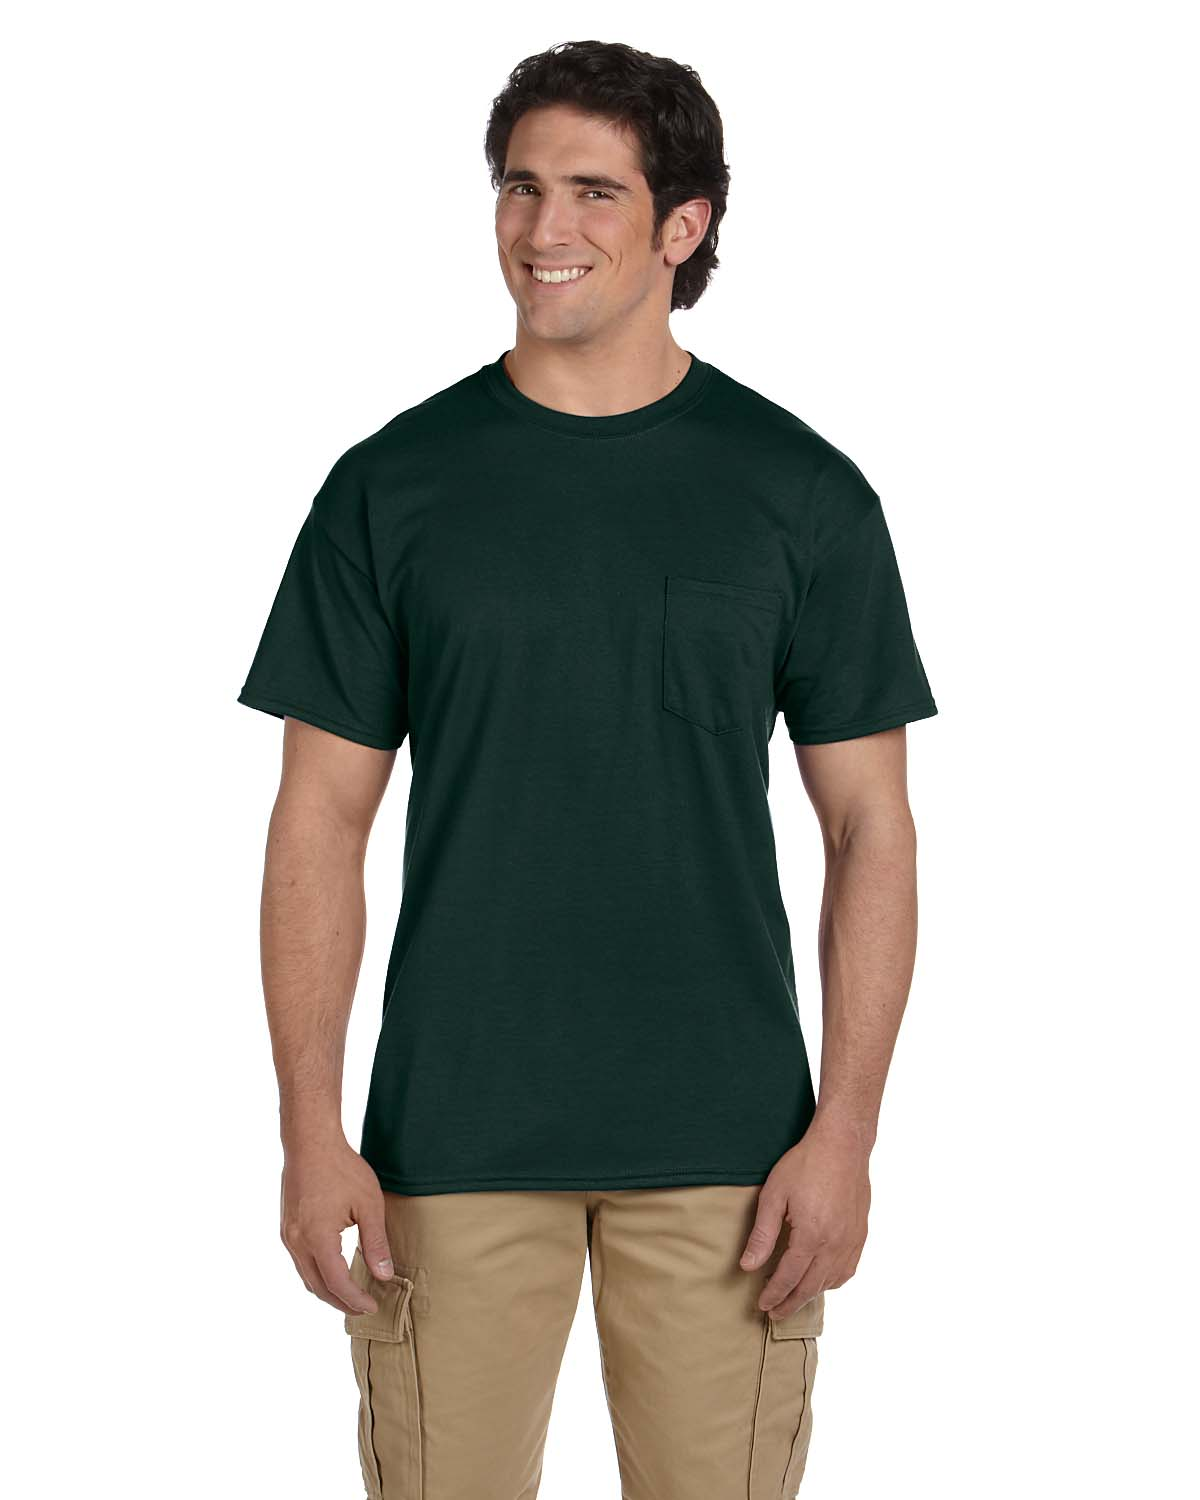 Gildan DryBlend® 5.6 Oz., 50/50 Pocket T-Shirt